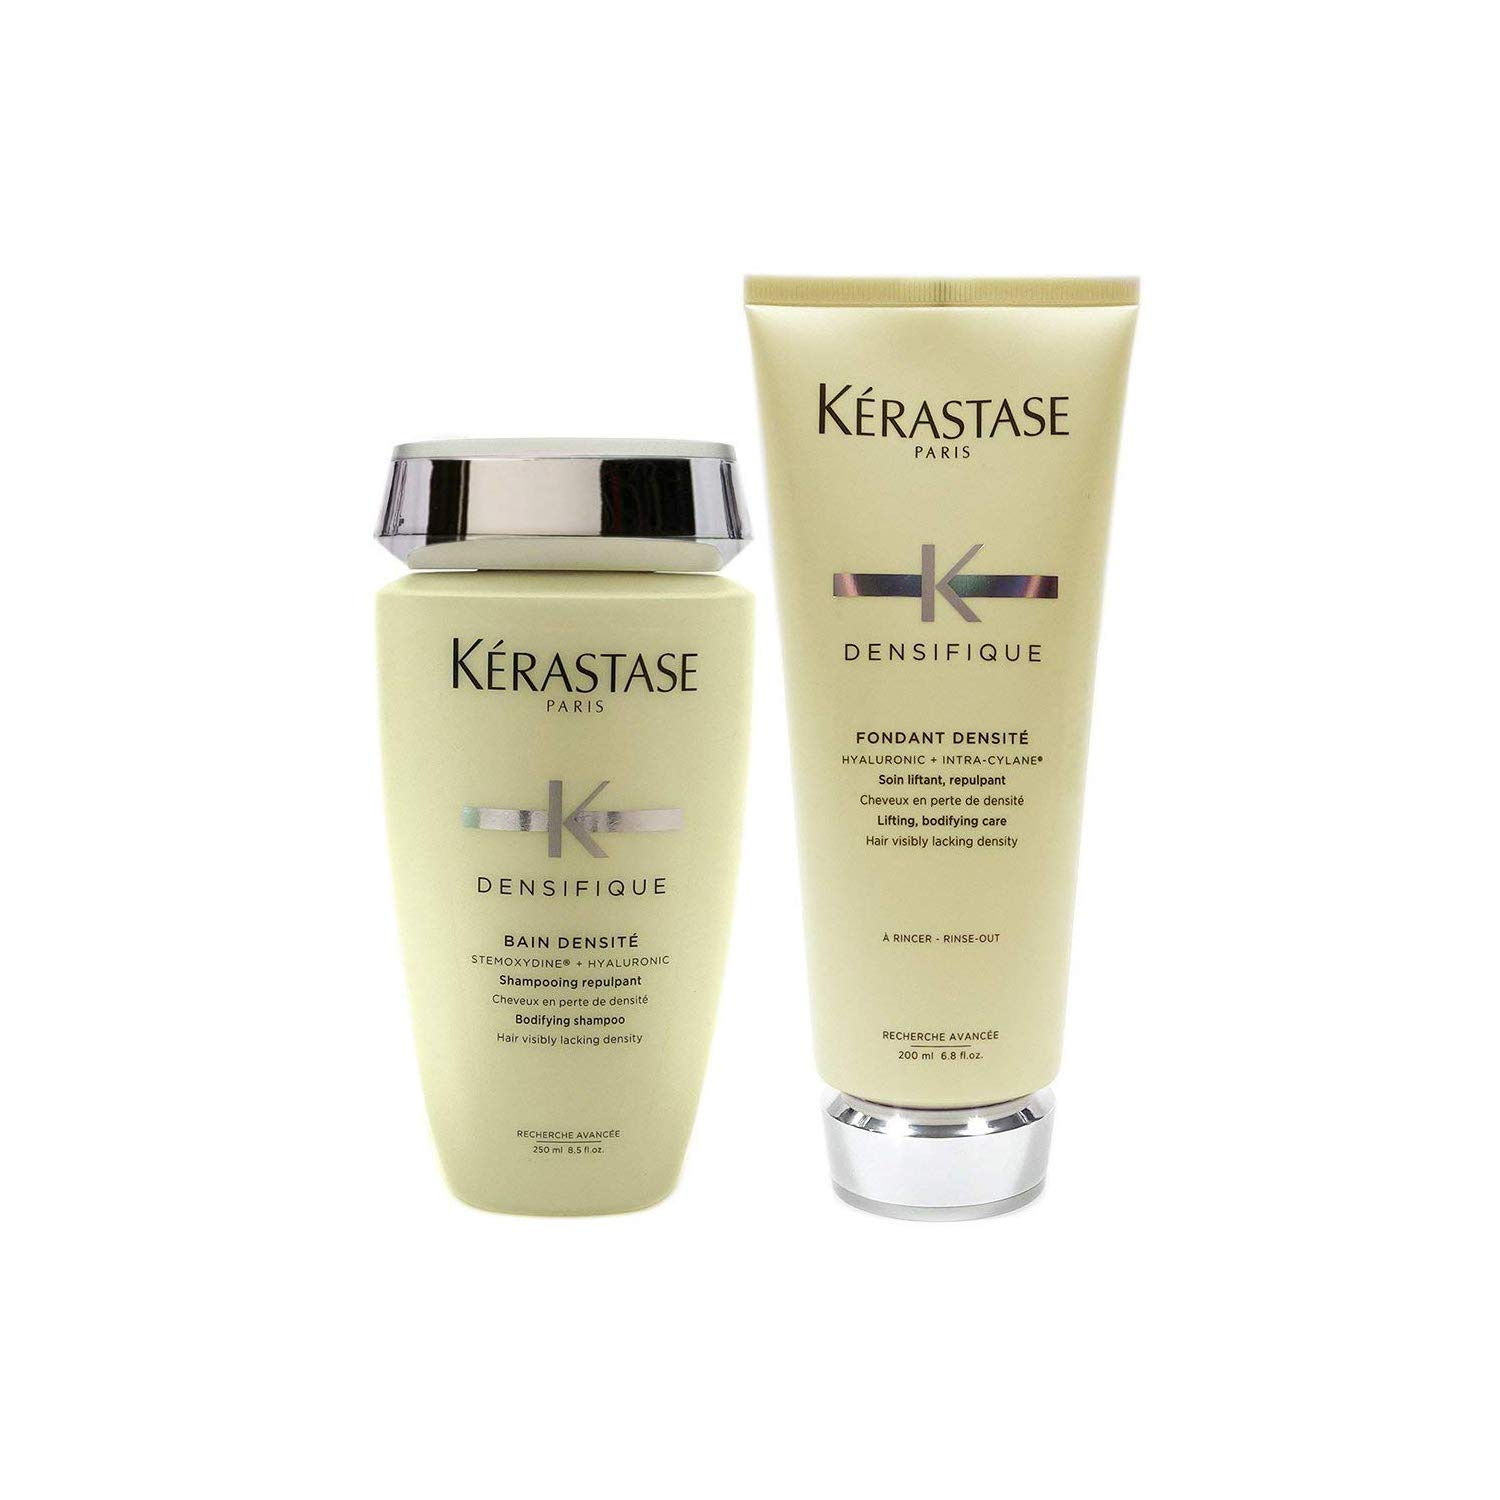 Kerastase Densifique Bain Densite 8.5 oz. and Fondant Densite 6.8 oz. Combo Pack by KERASTASE